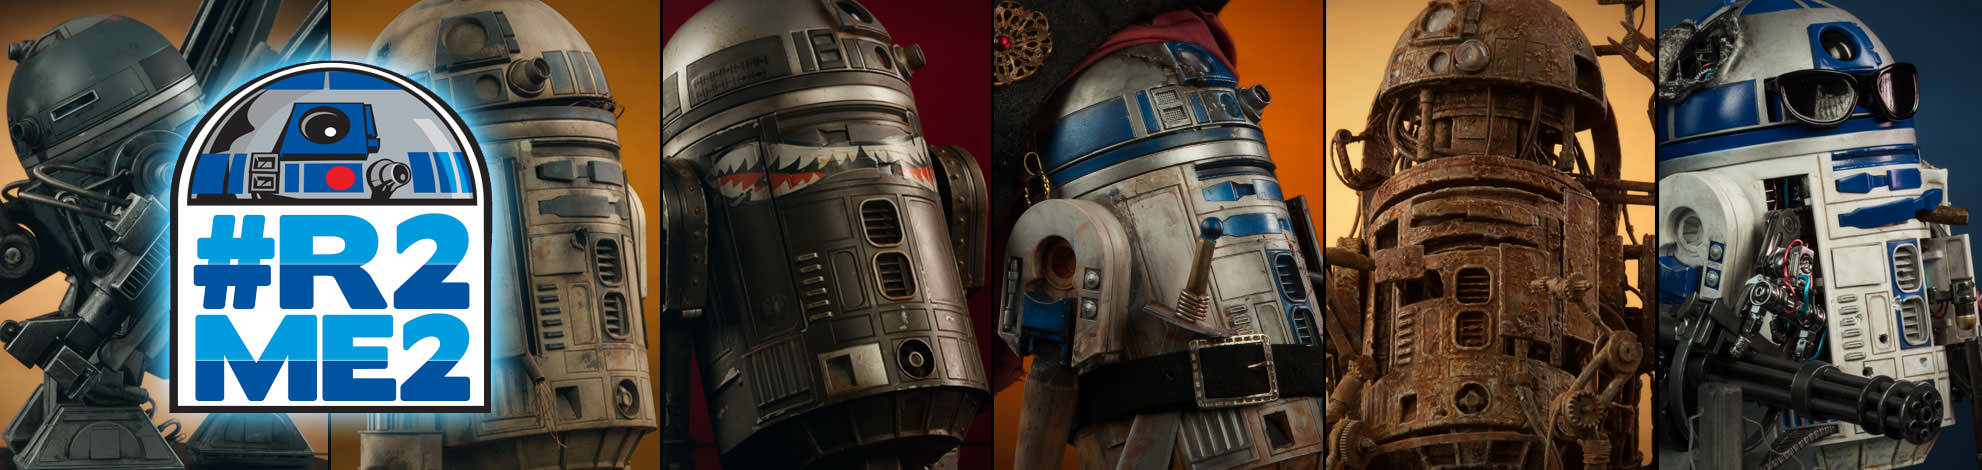 Sideshow Presents R2-ME2